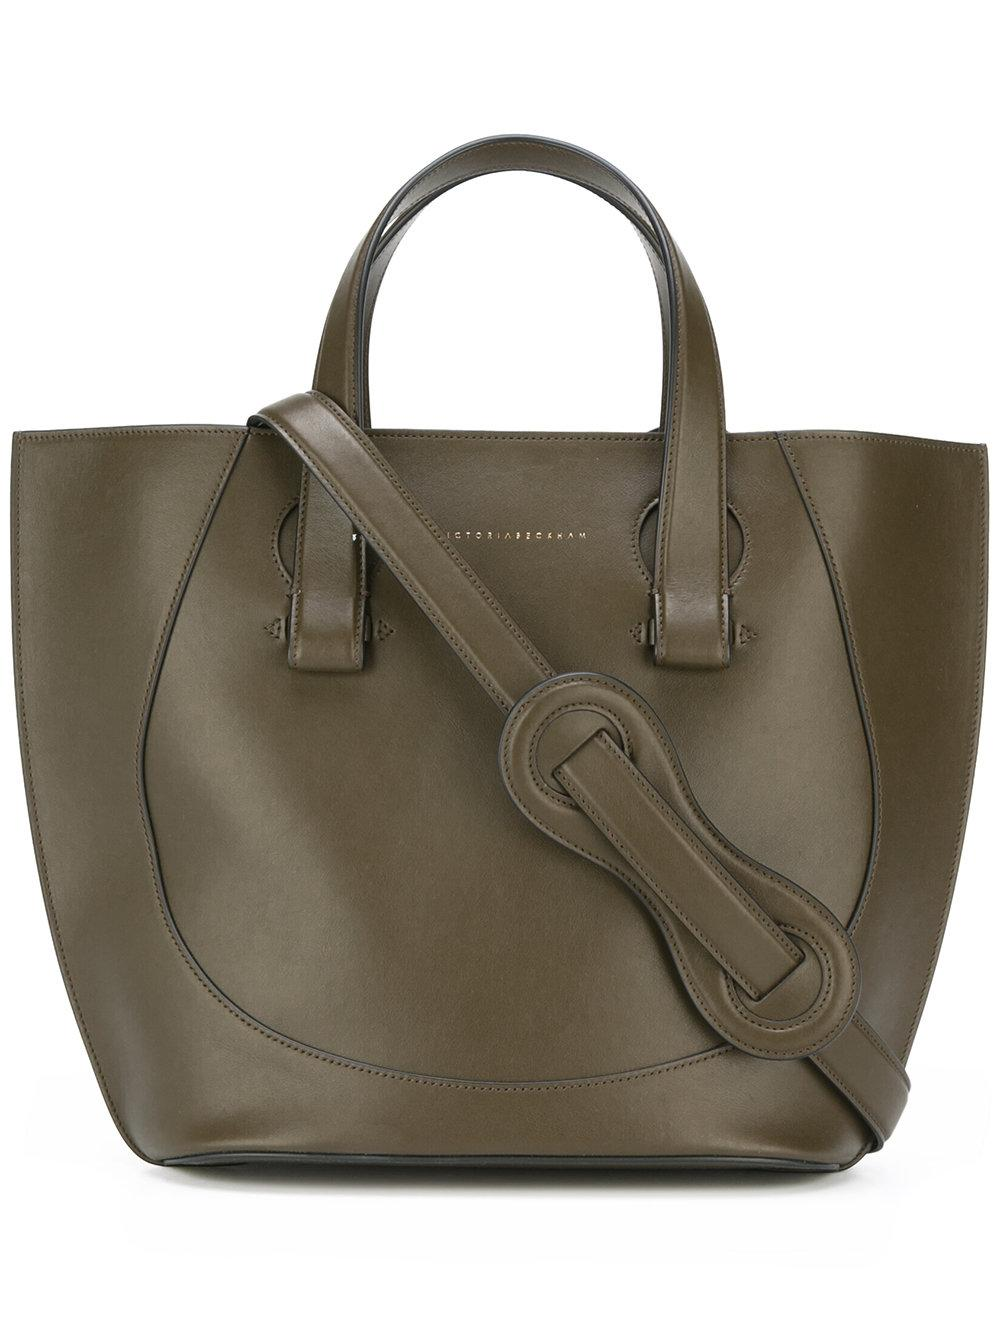 Victoria beckham Small Tulip Tote in Green